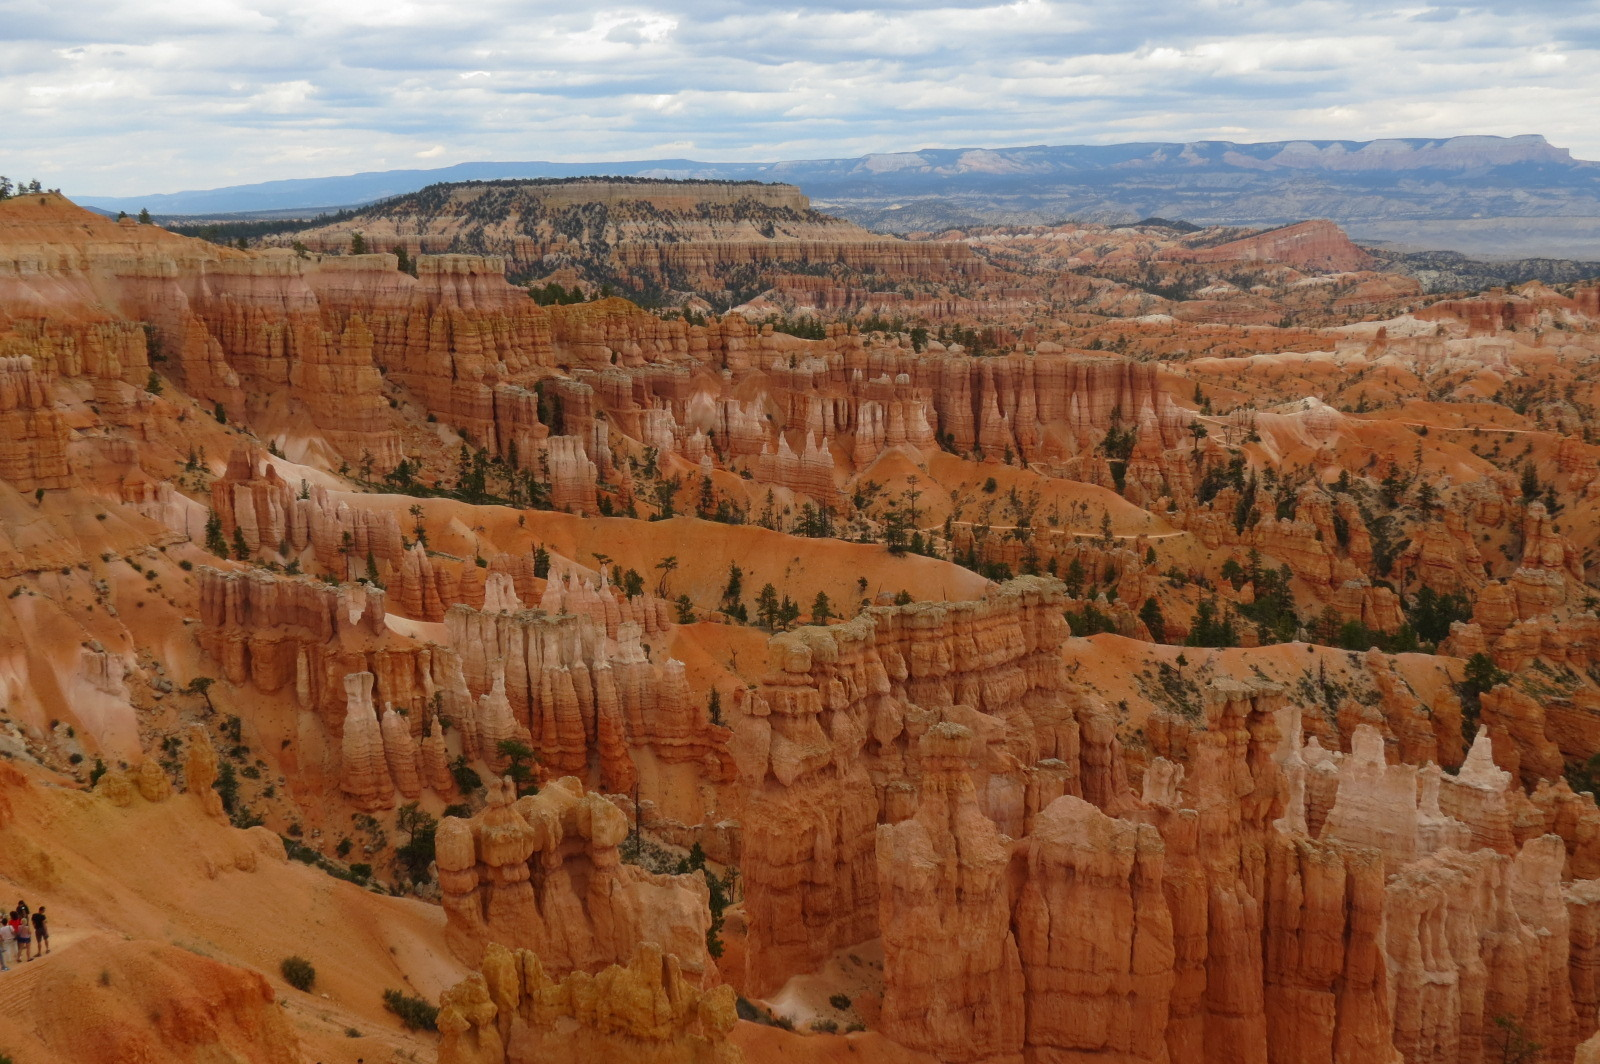 On the Road Again: SEPTEMBER 6 - BRYCE - SUNRISE POINT